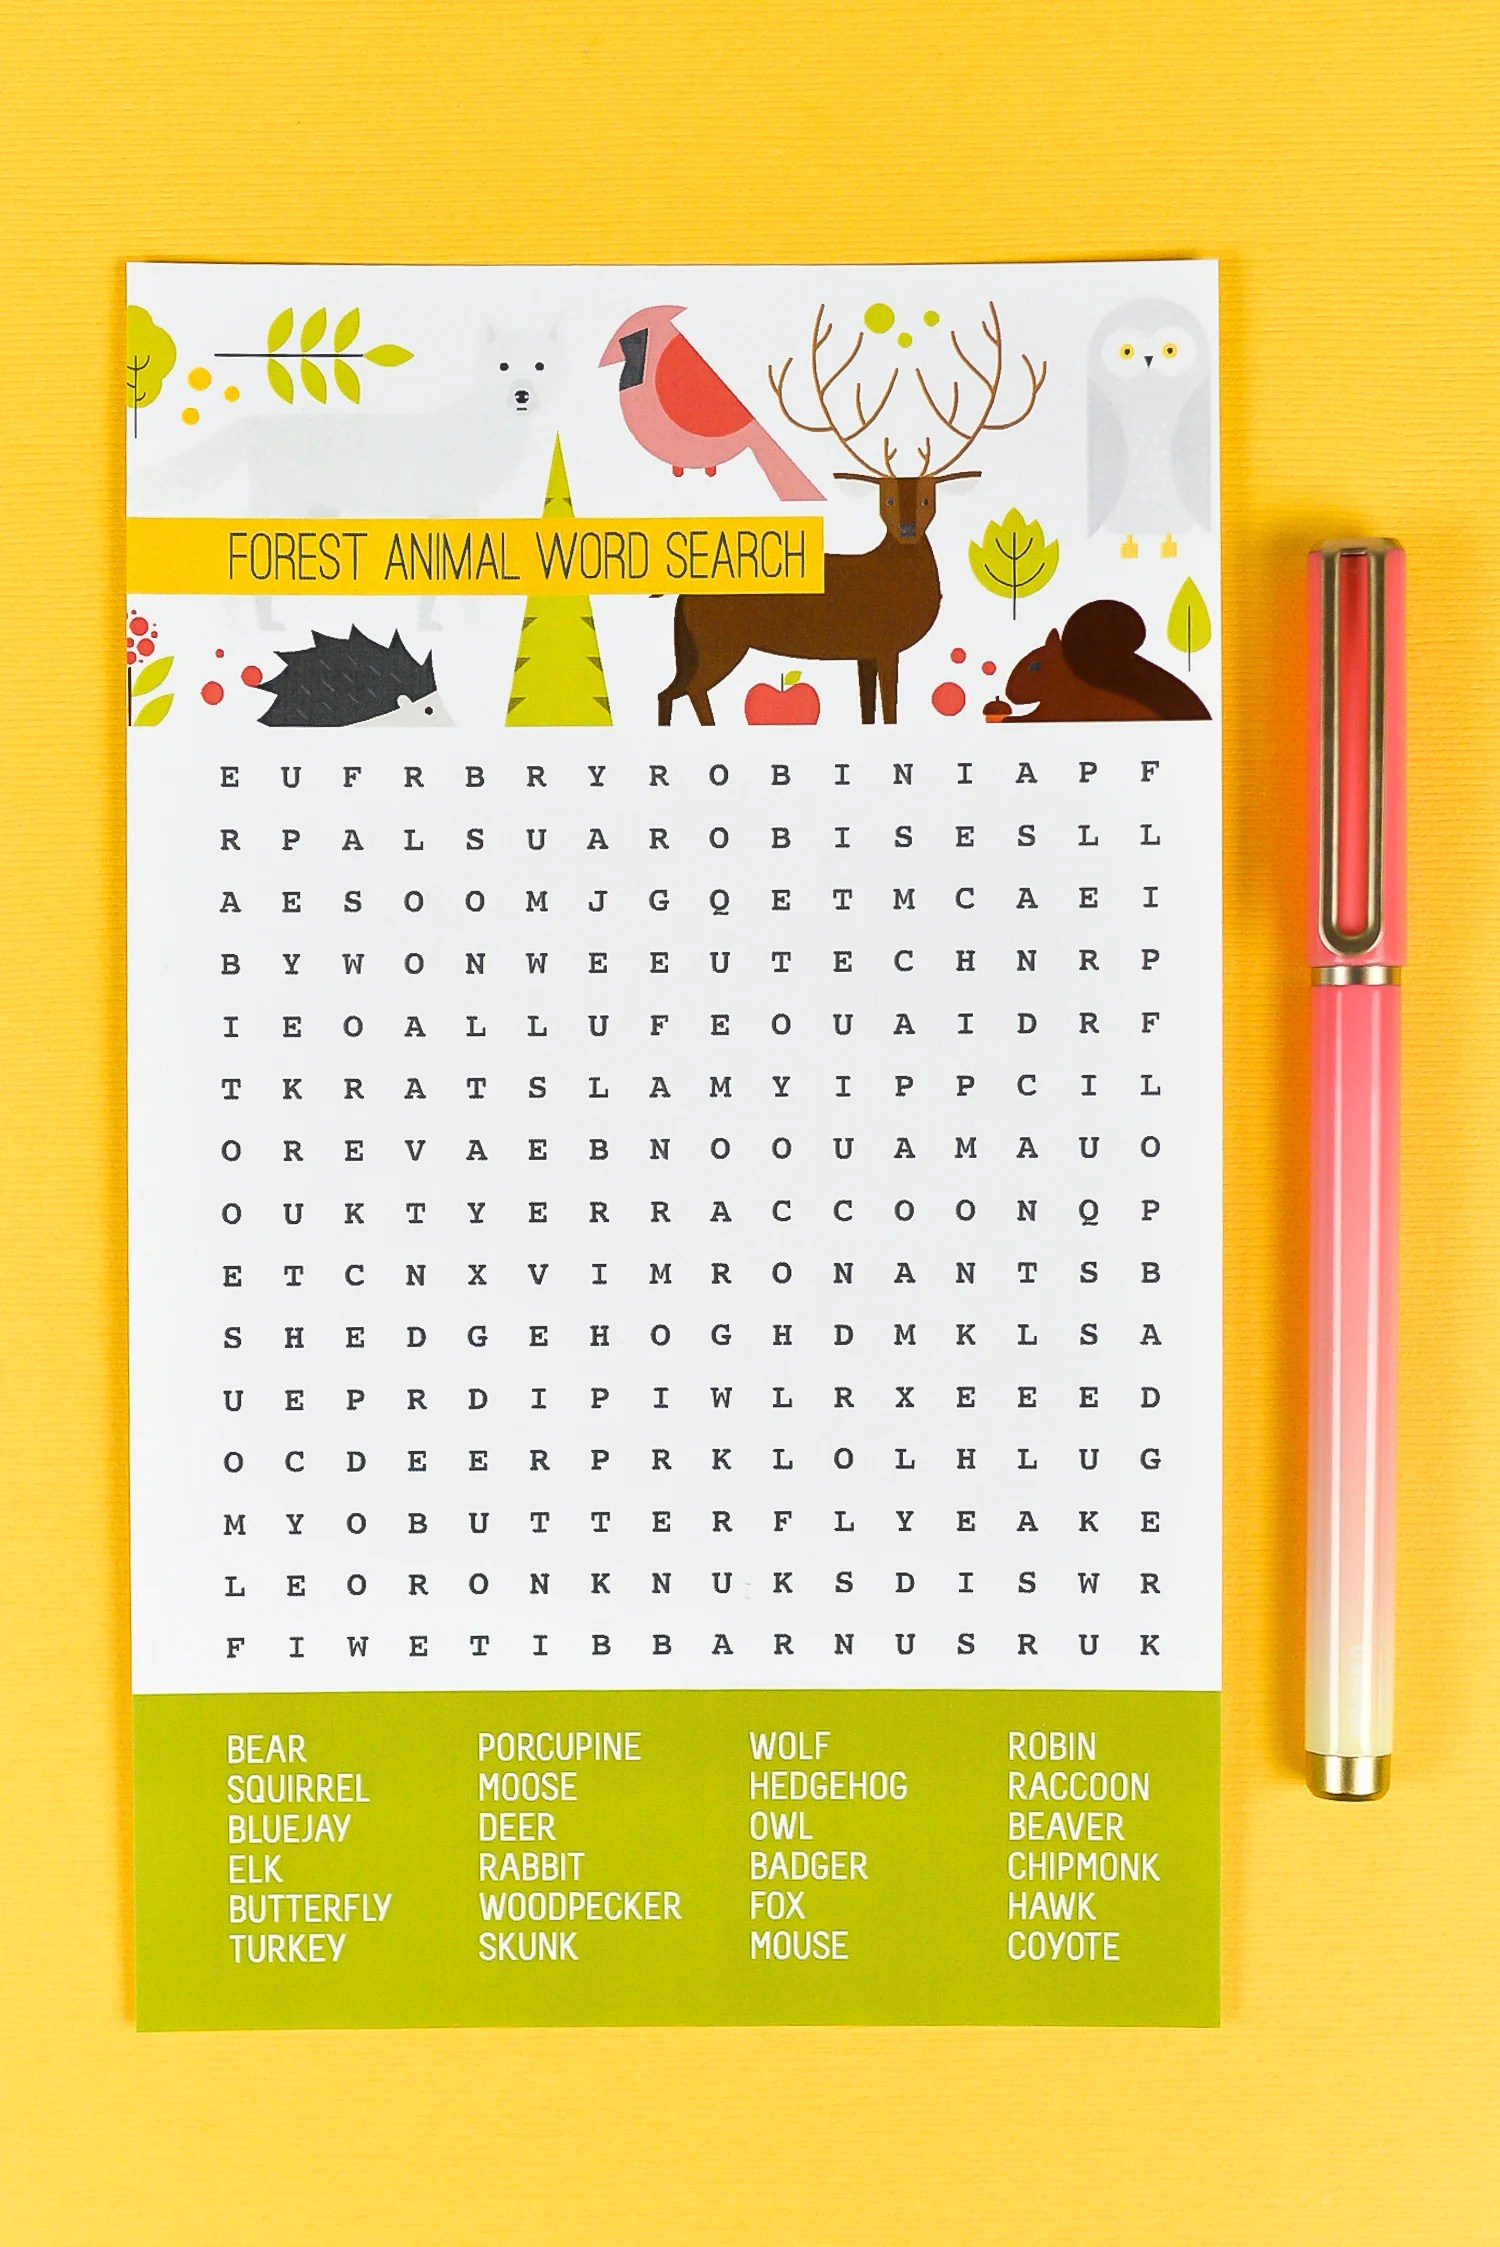 Head to the forest with this fun animal word search! This free printable forest animal word search is great for woodland birthday parties, baby showers, and more!